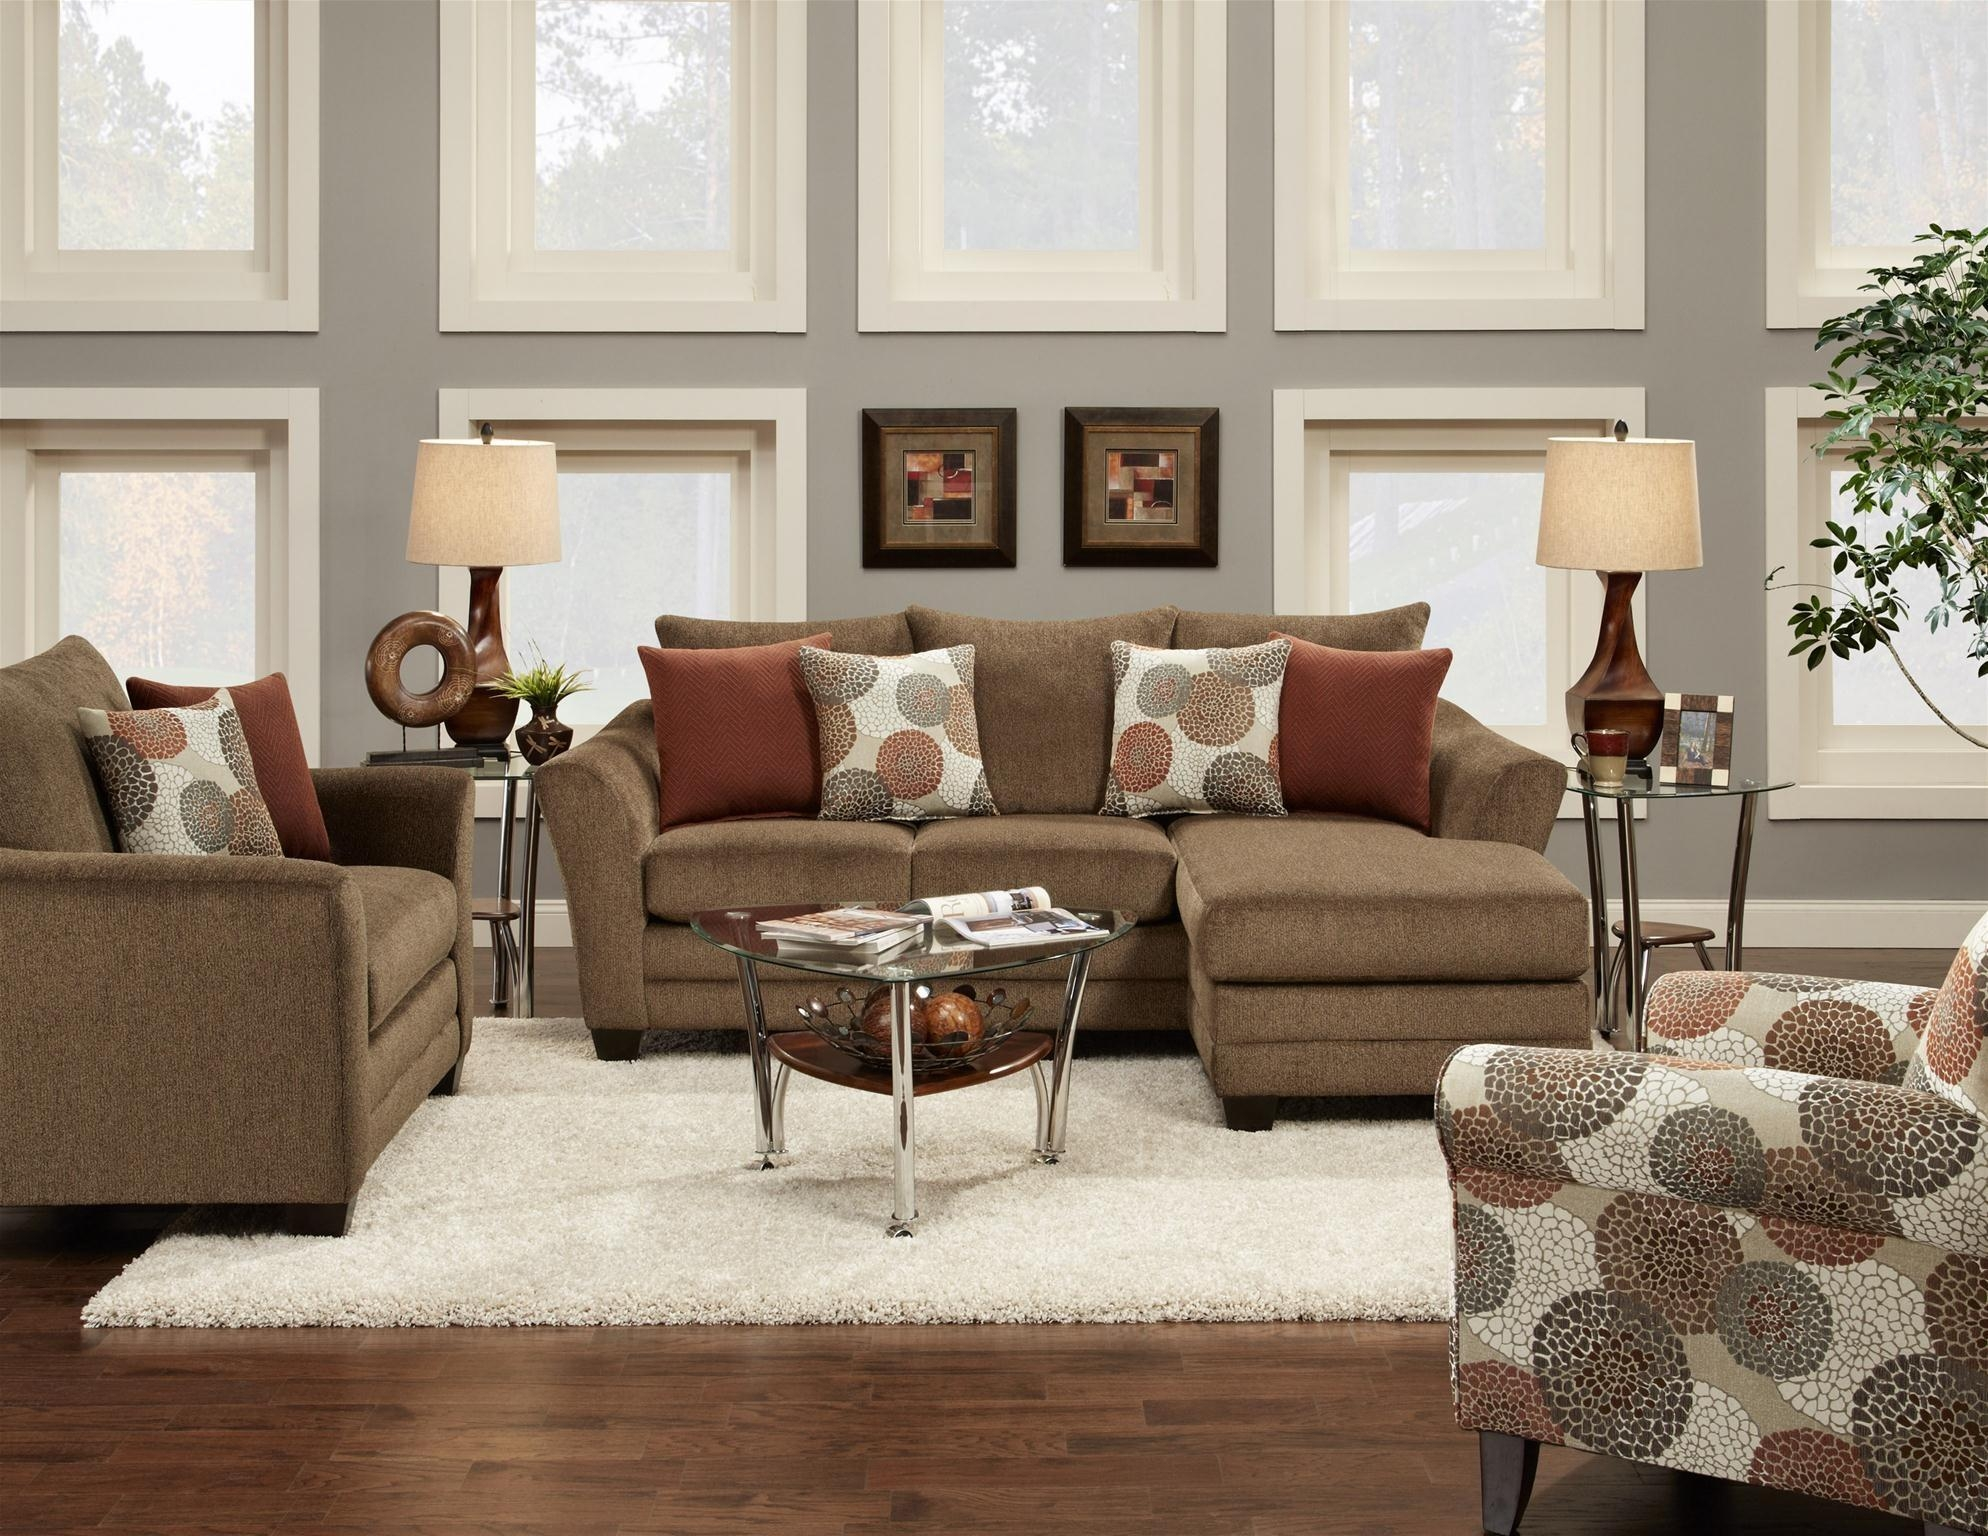 Furniture Home : The Lovesac Amazon Couches Oversized Couch With Regard To Lovesac Sofas (View 12 of 20)